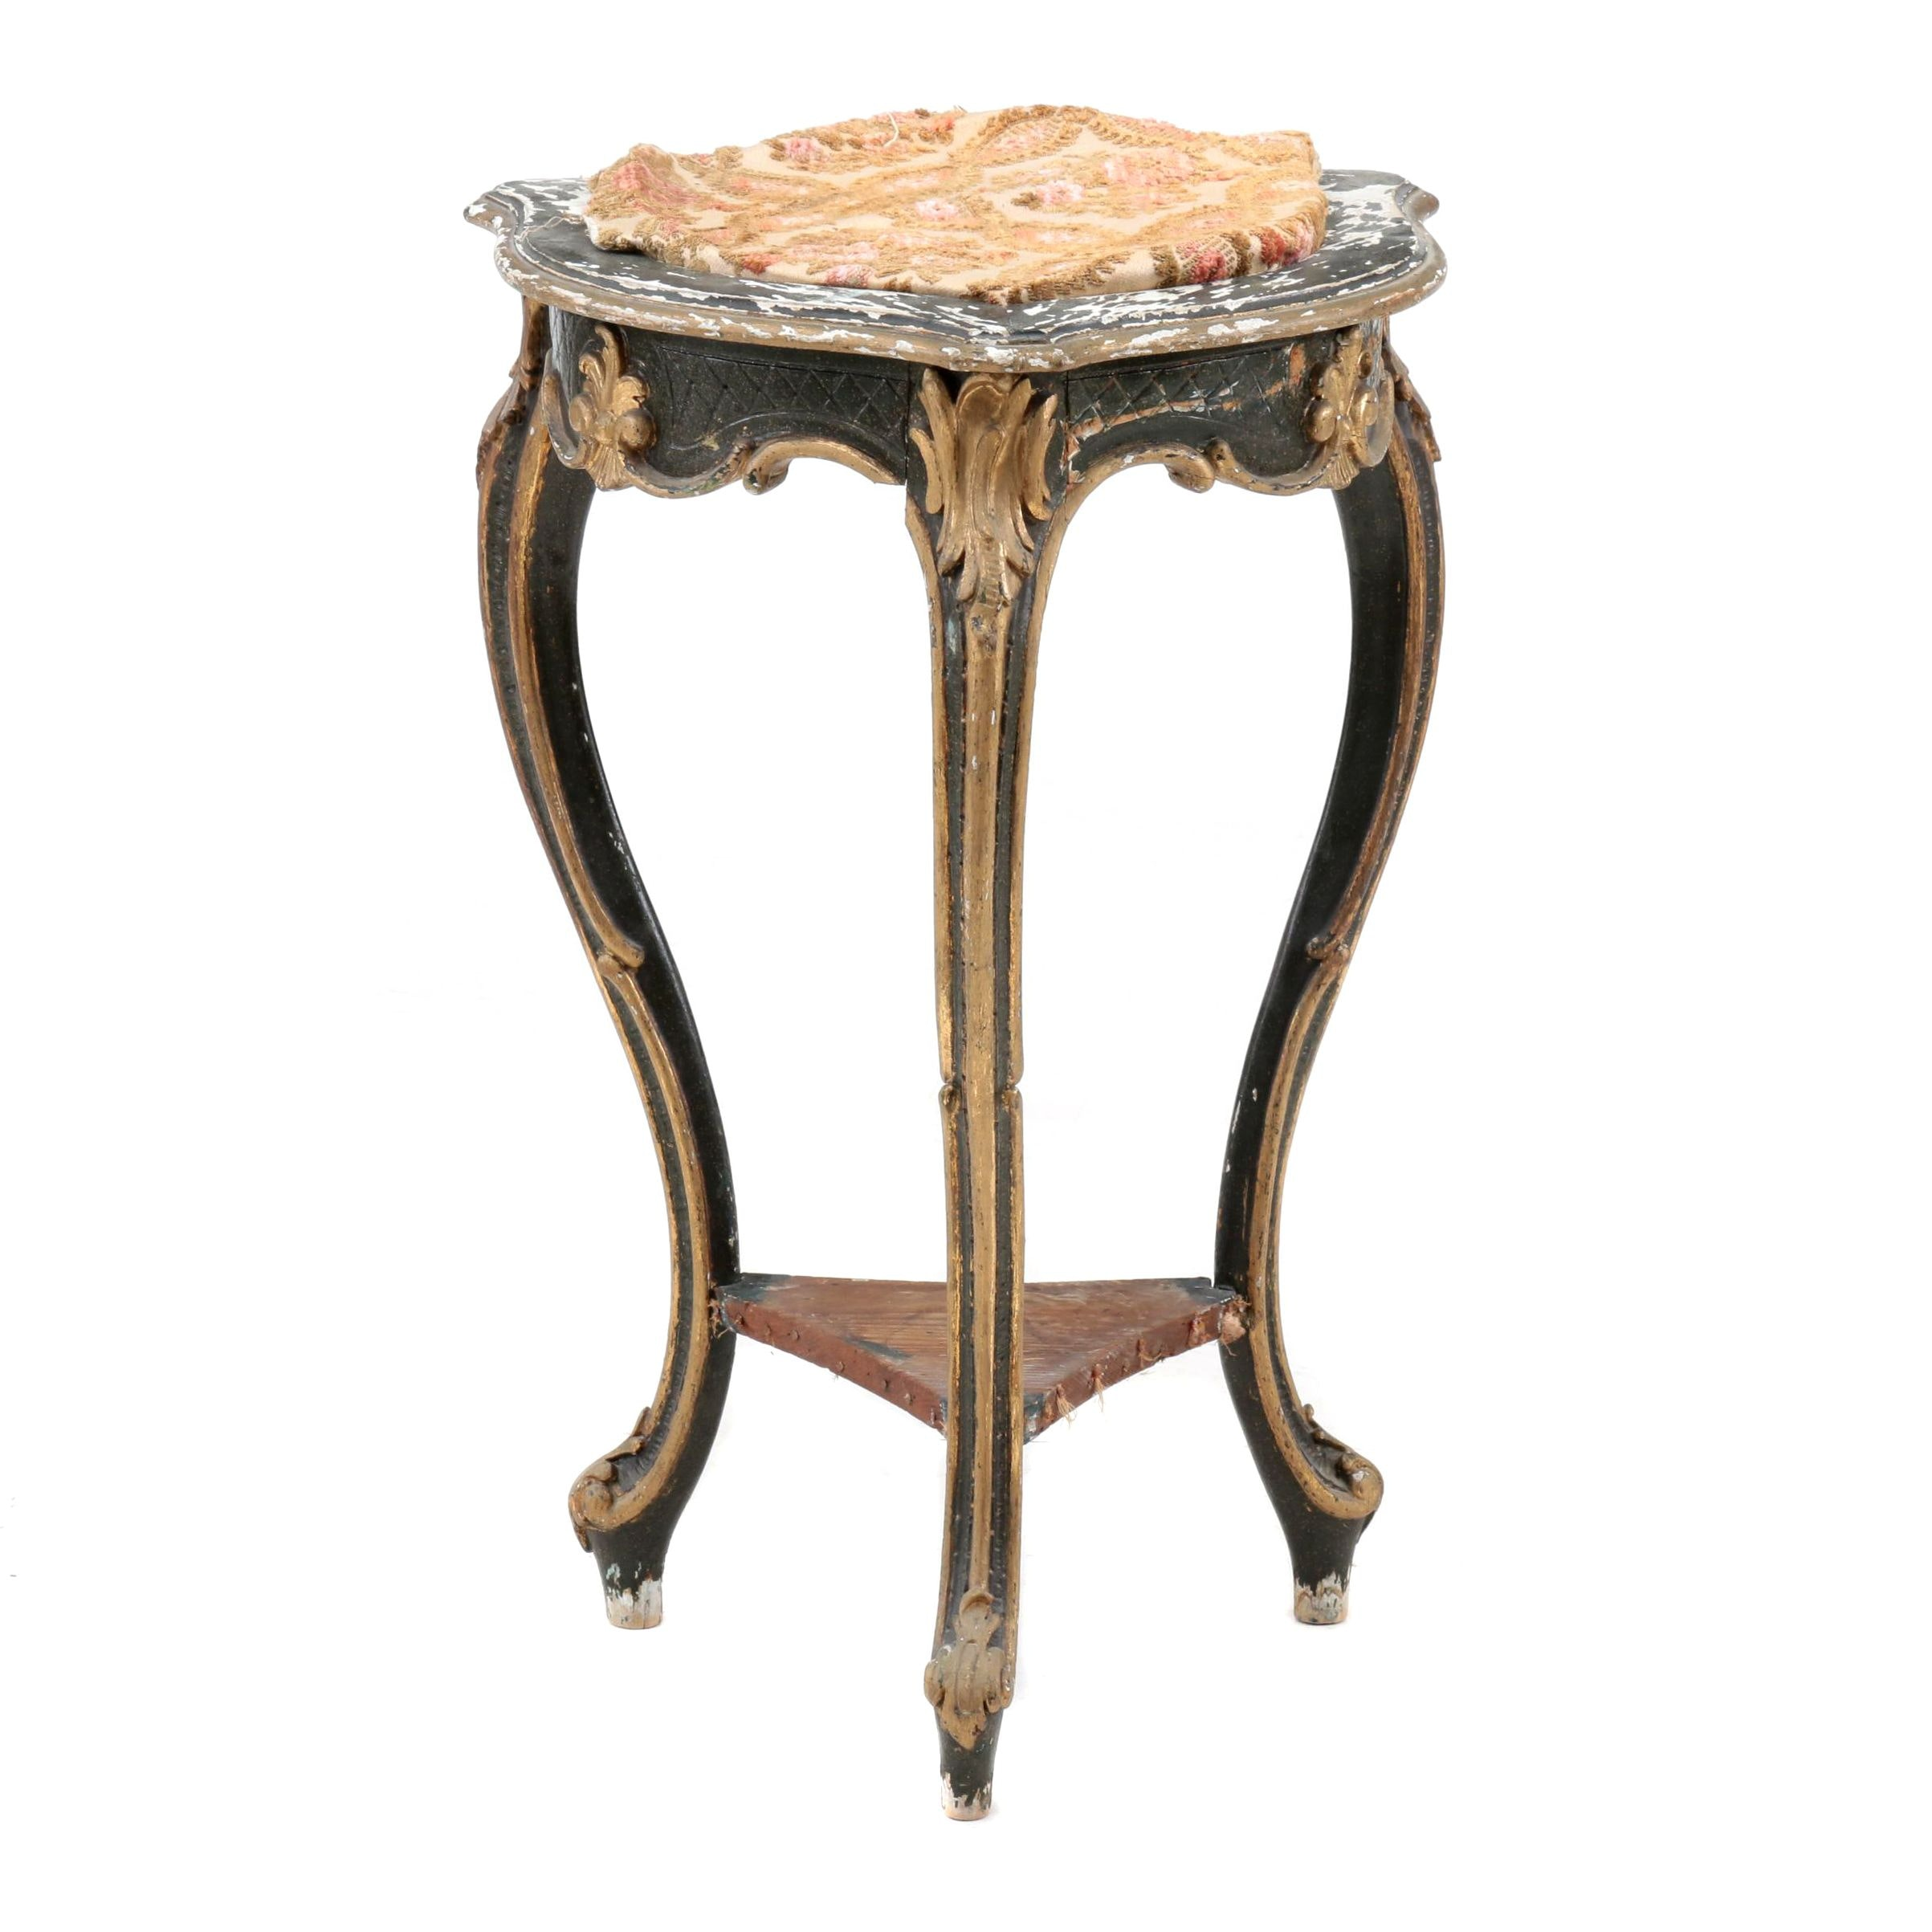 Louis XV Style Giltwood and Painted Occasional Table, Early/Mid-20th Century